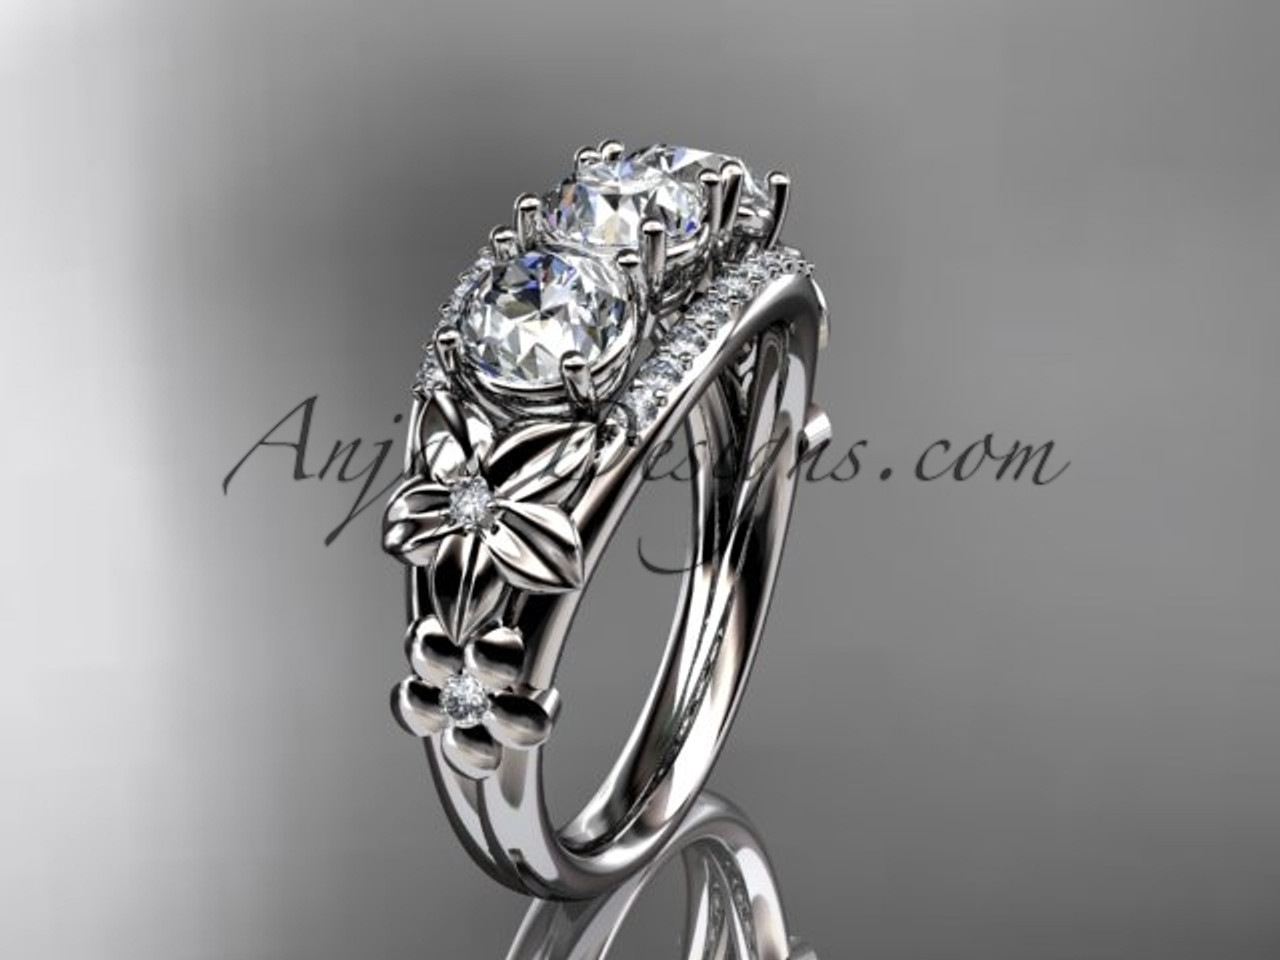 14kt white gold diamond flower 3 stone forever one moissanite wedding ring adlr203 - Moissanite Wedding Rings